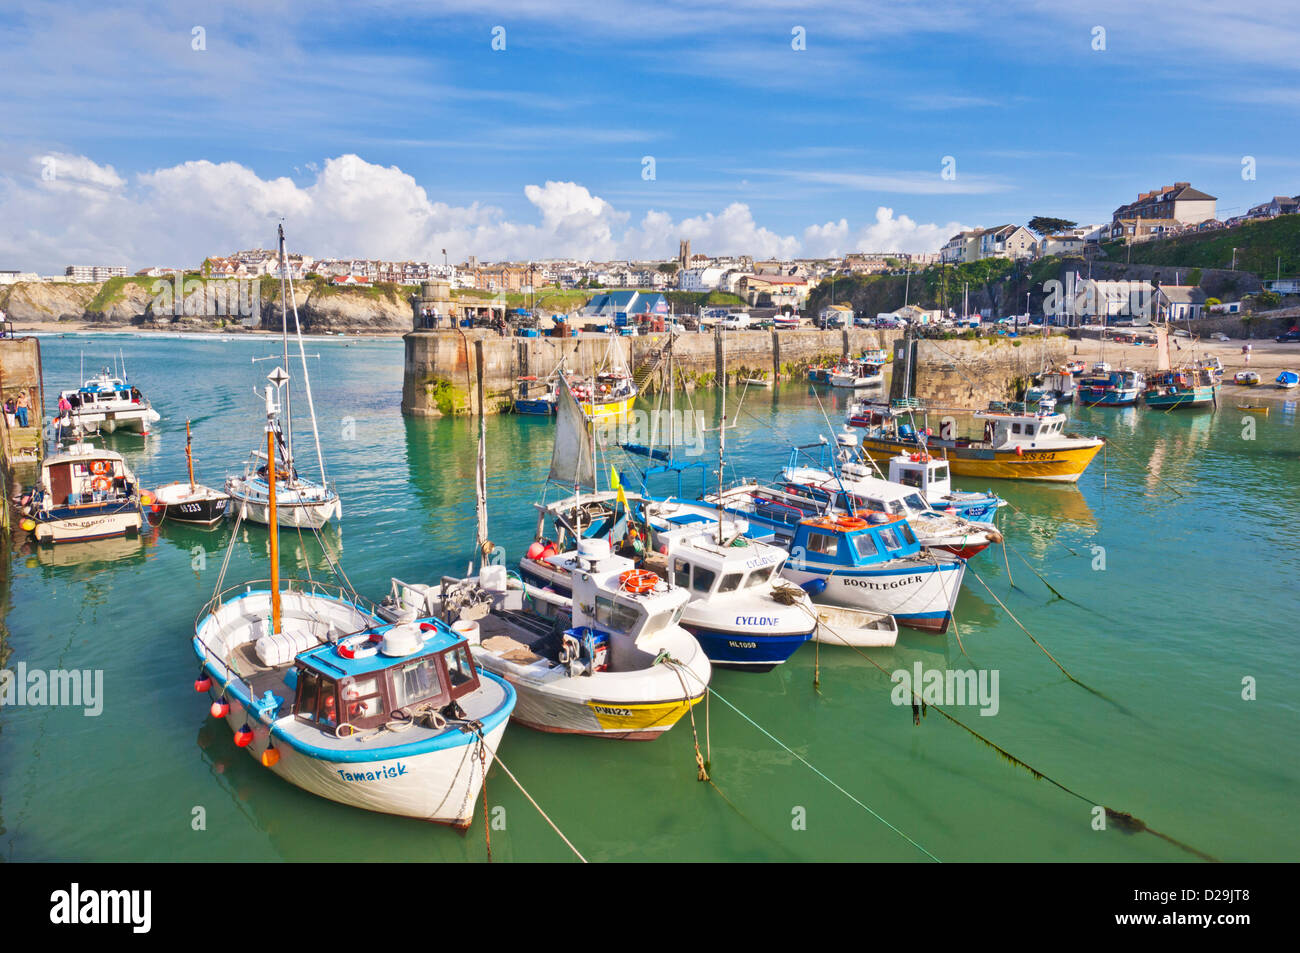 Fishing Boats moored in the harbour, Newquay, Cornwall, England, GB, UK, EU, Europe - Stock Image